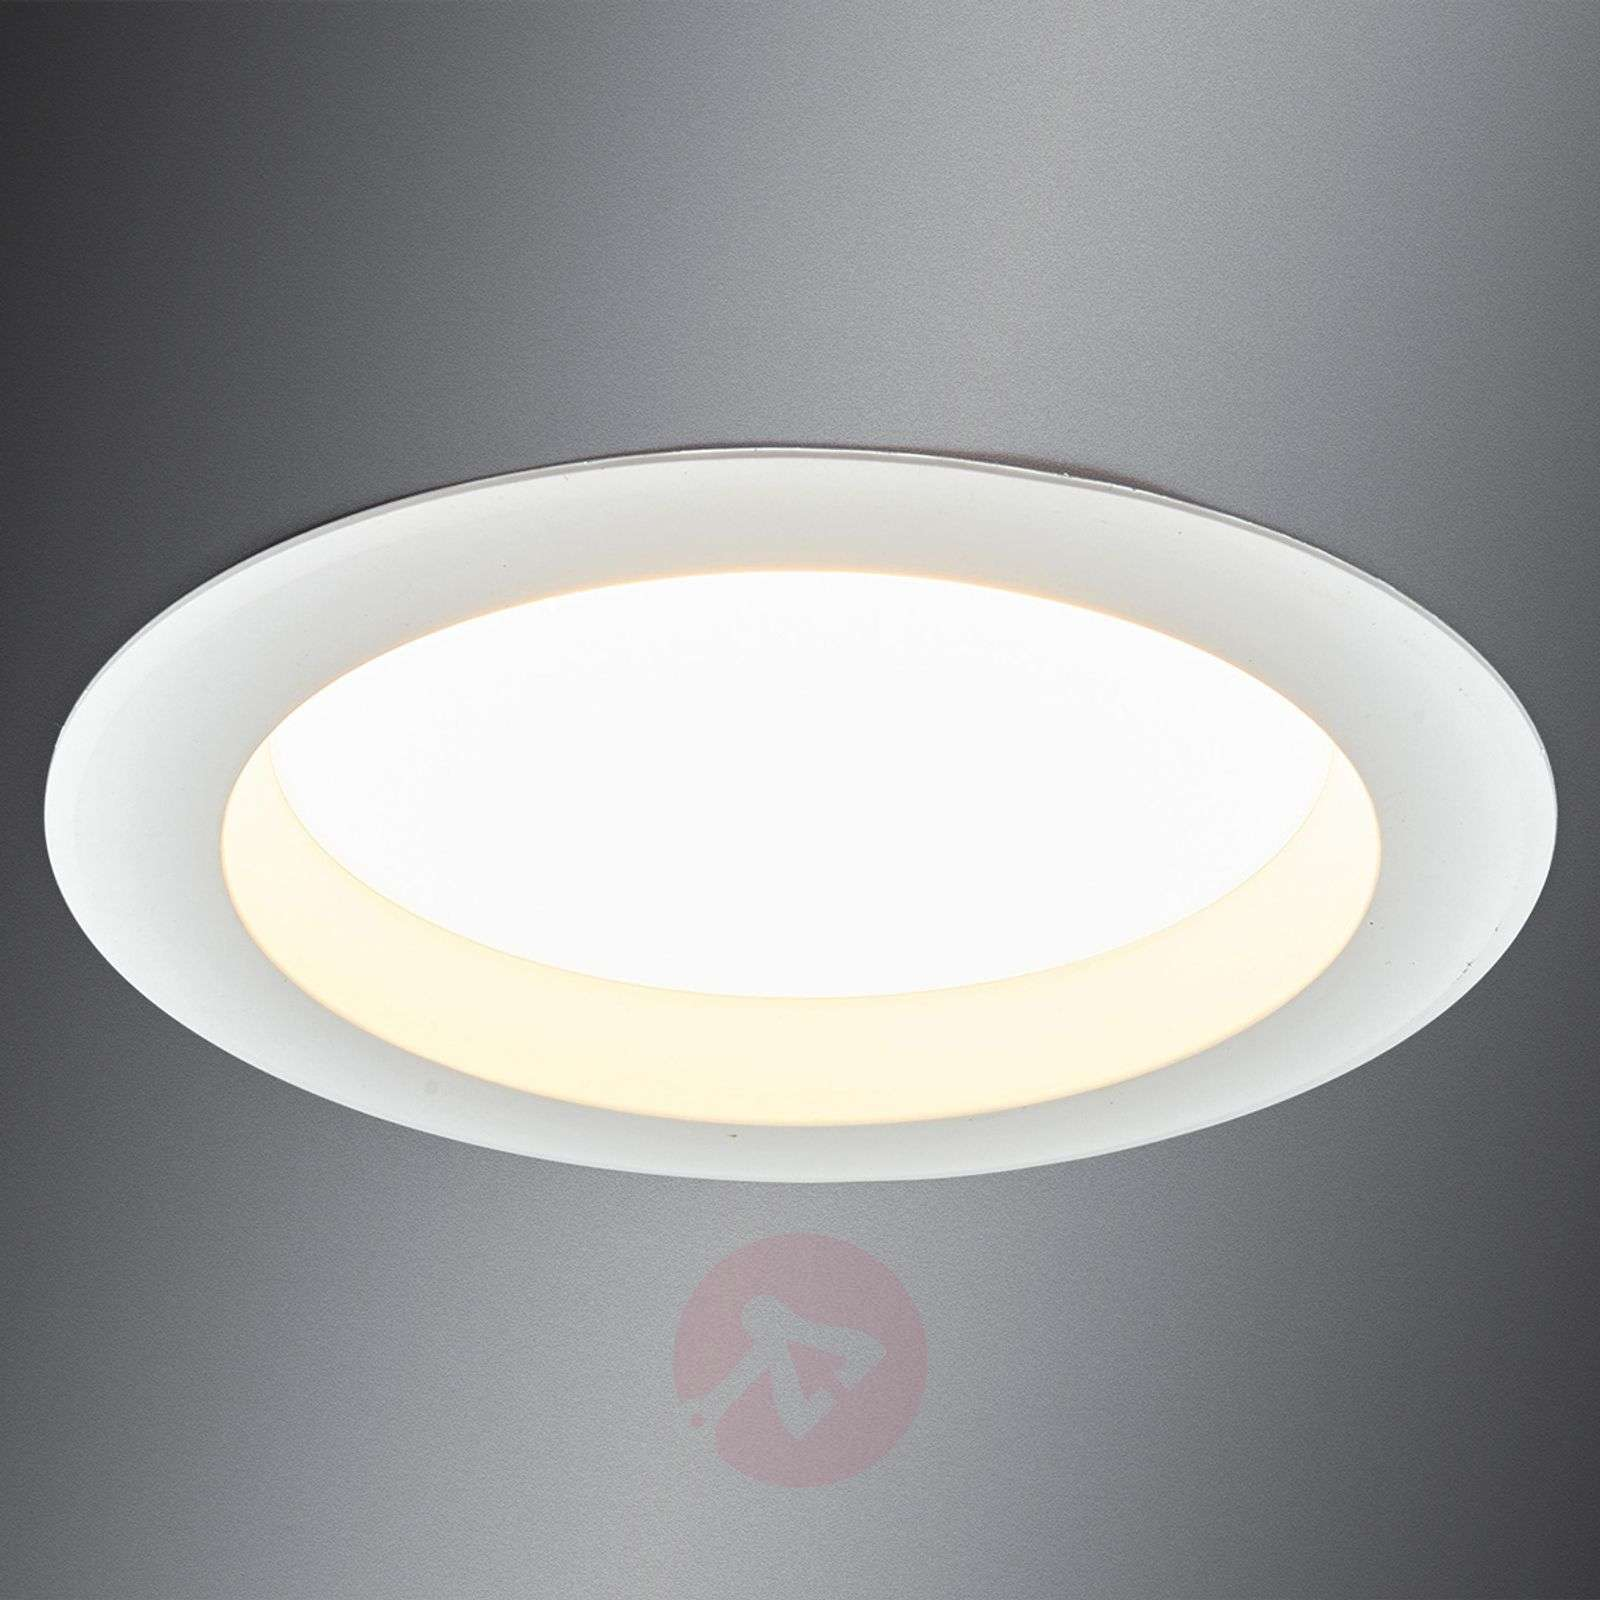 Led Recessed Ceiling Light Arian 17 4 Cm 15 W Lights Co Uk